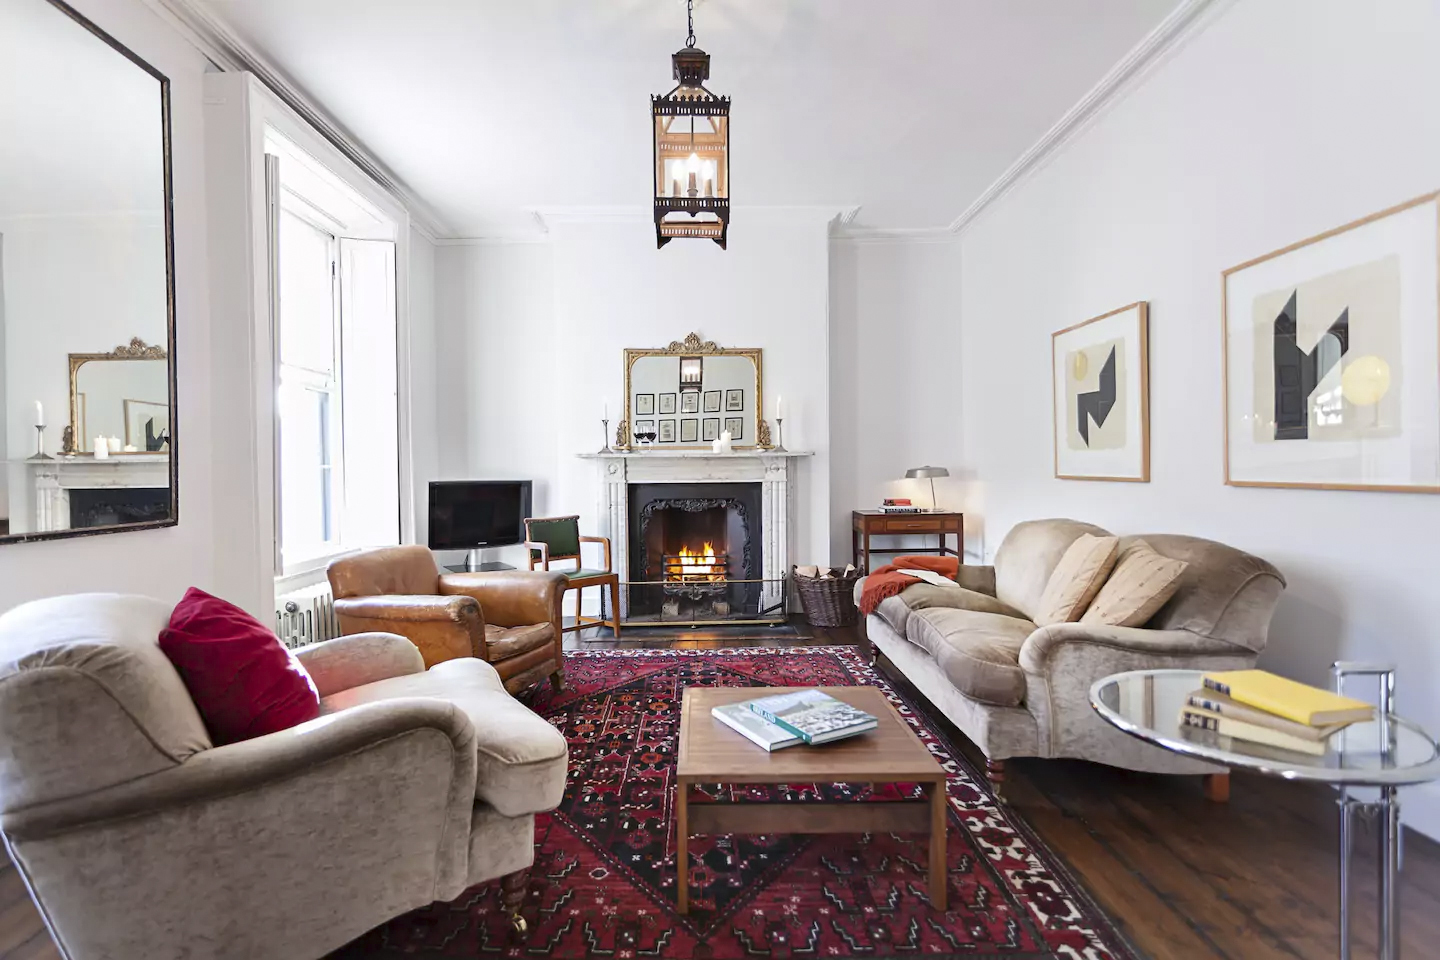 Best Airbnbs Dublin- Georgian townhouse